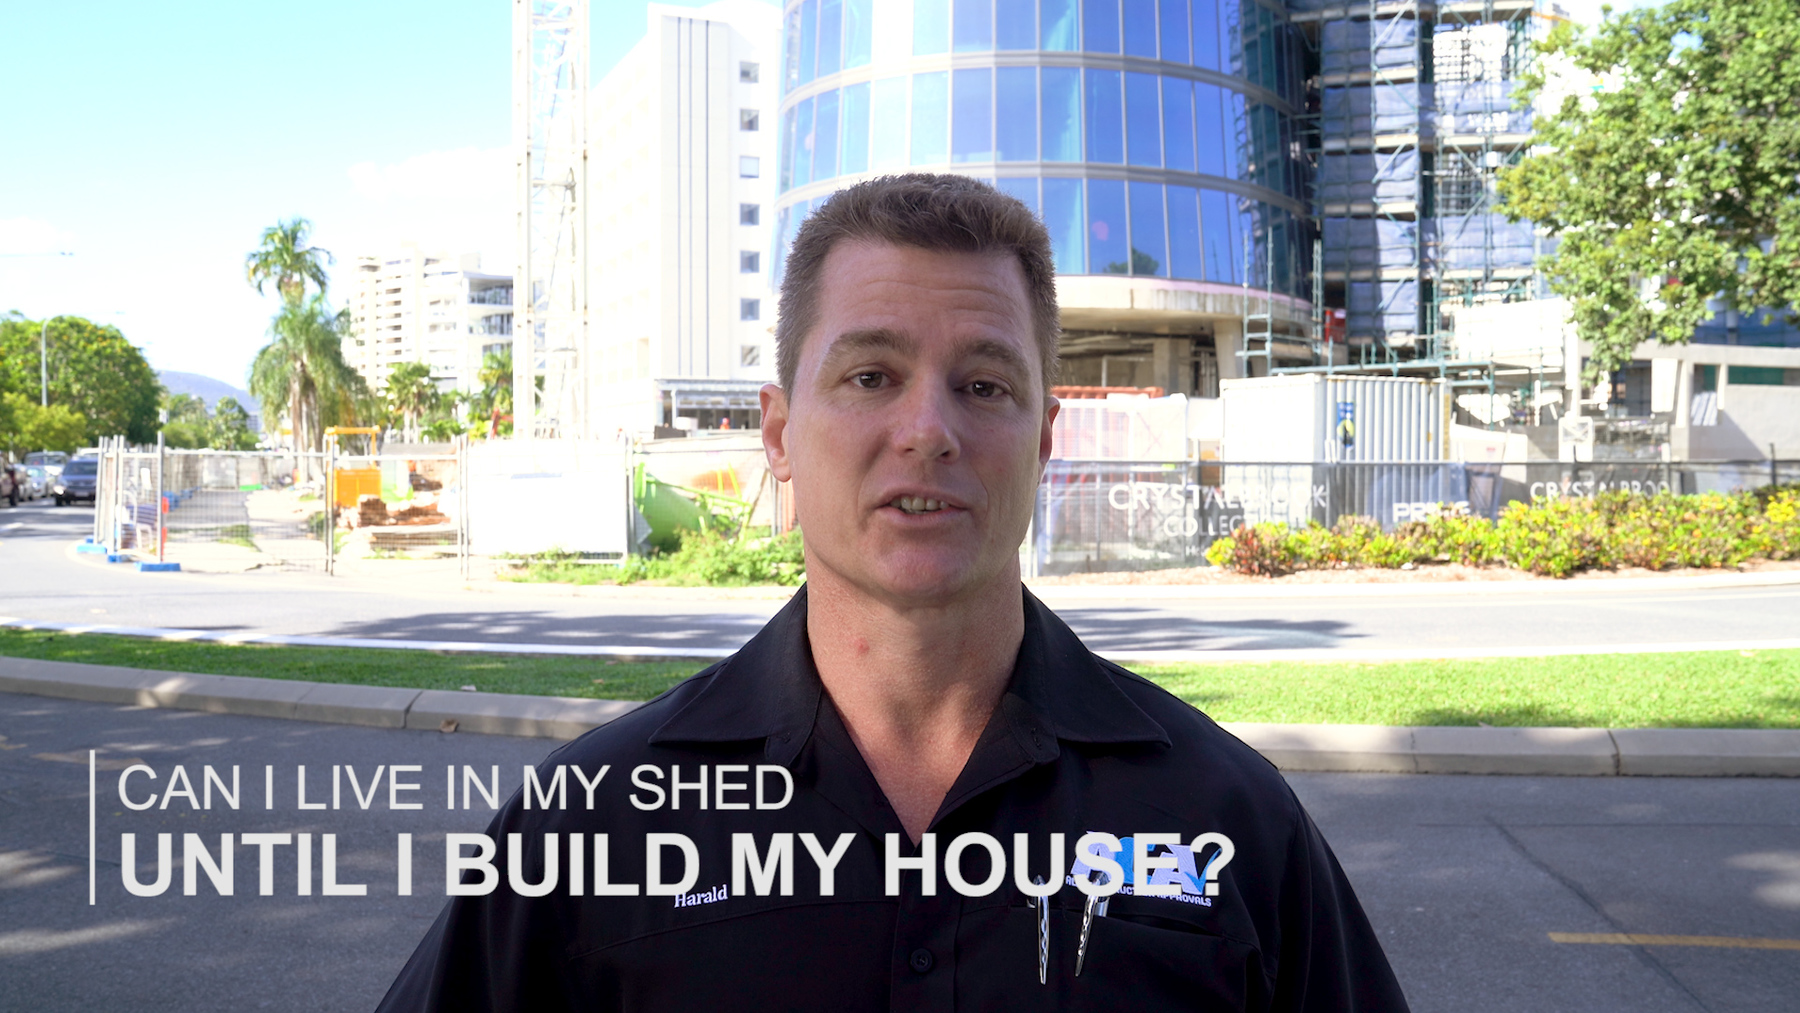 Can I live in my shed until I build my house?